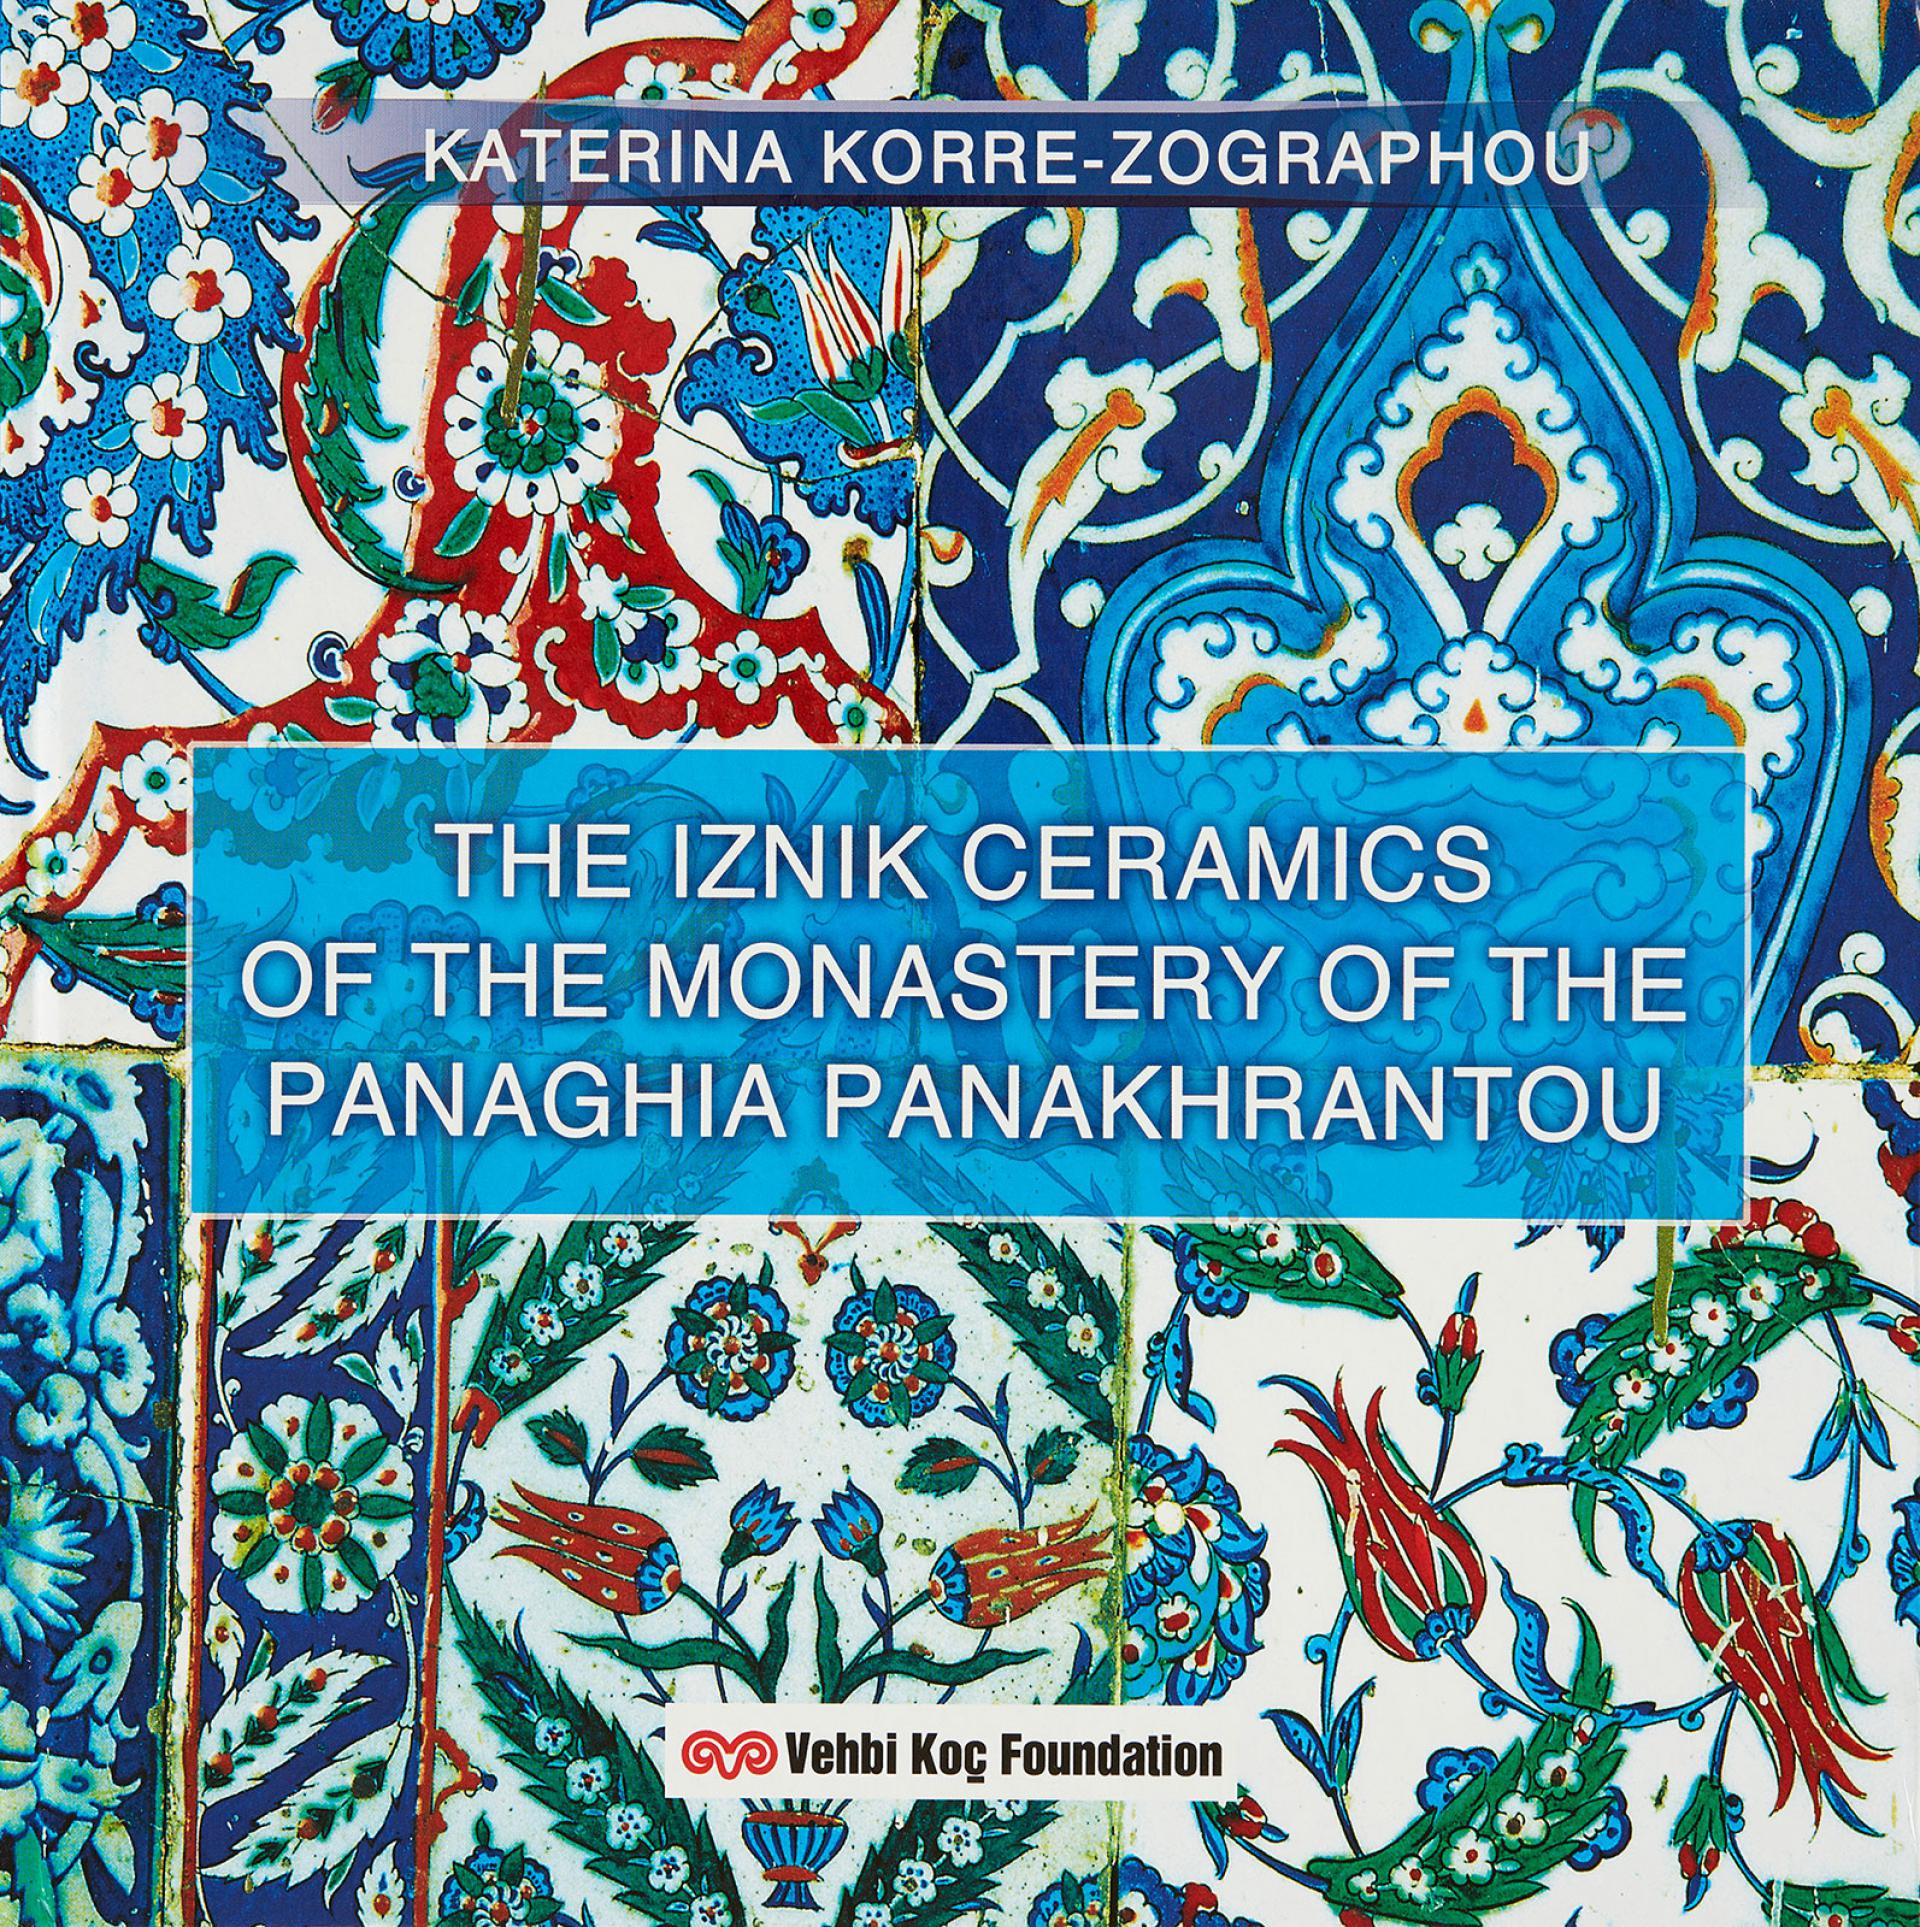 The Iznik Ceramics of the Monastry of Panaghia Panakhrantou - Sadberk Hanım Museum